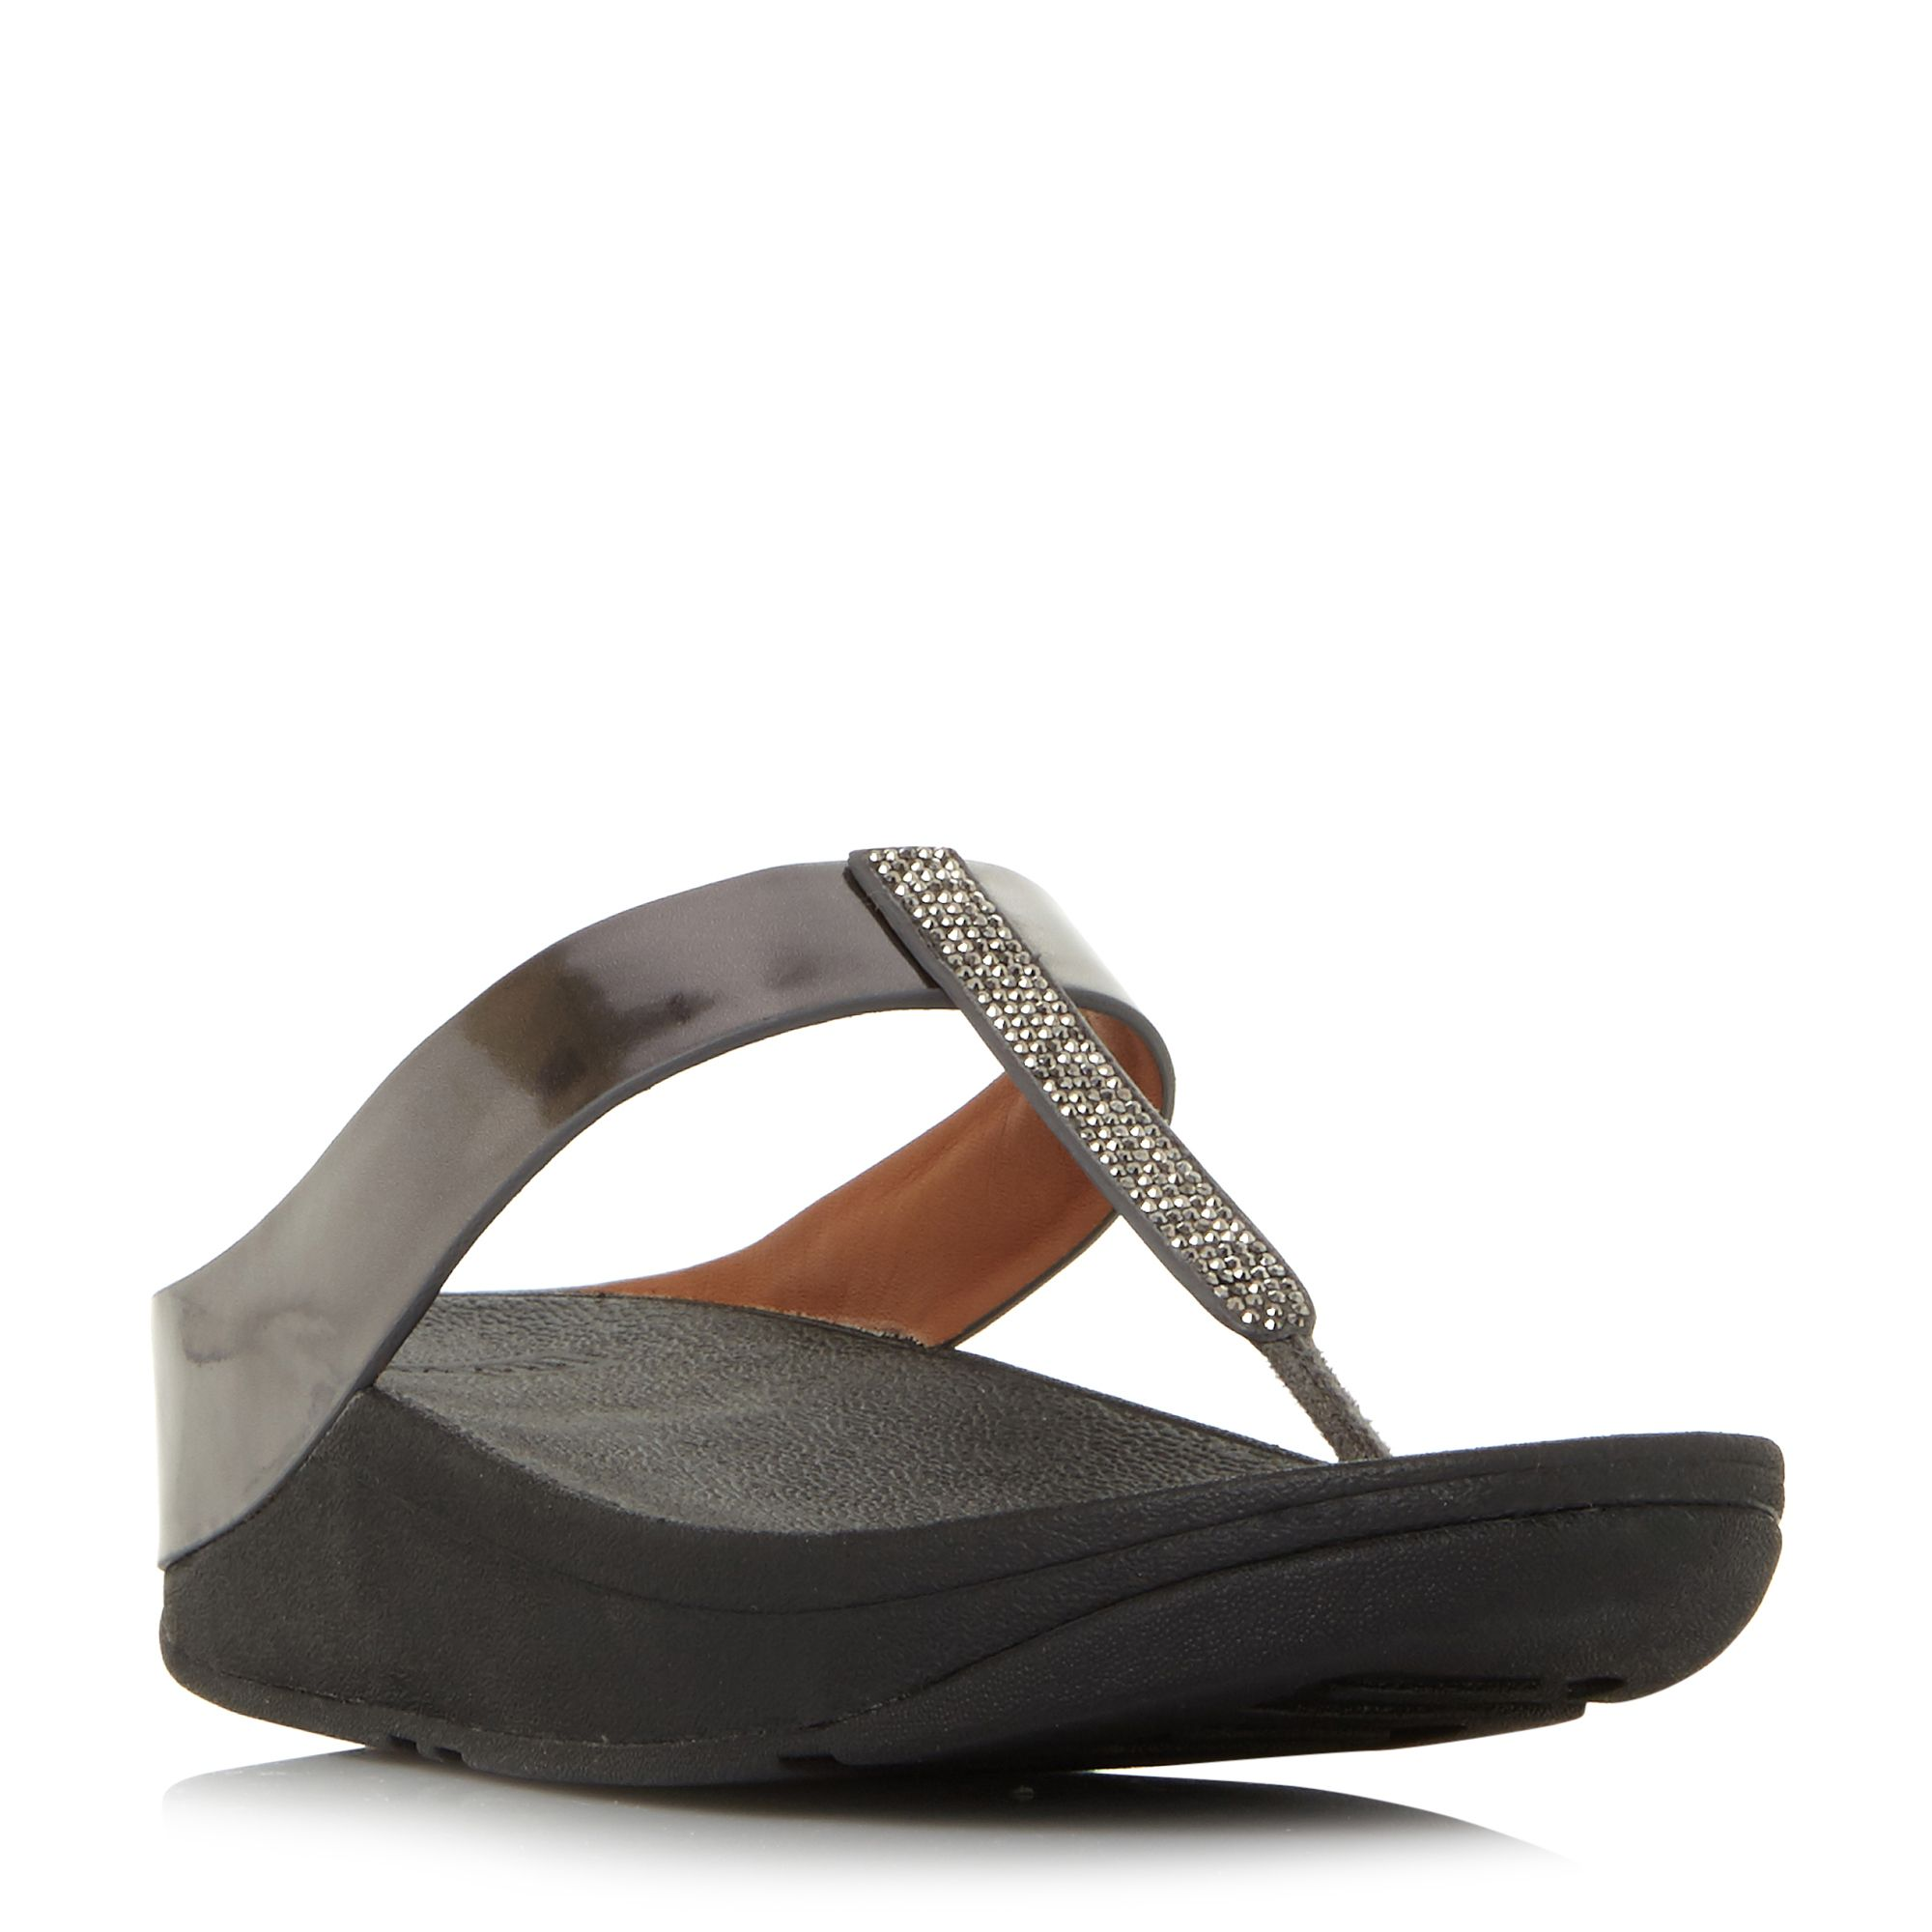 FitFlop Fino Crystal Toe Post Sandals, Pewter